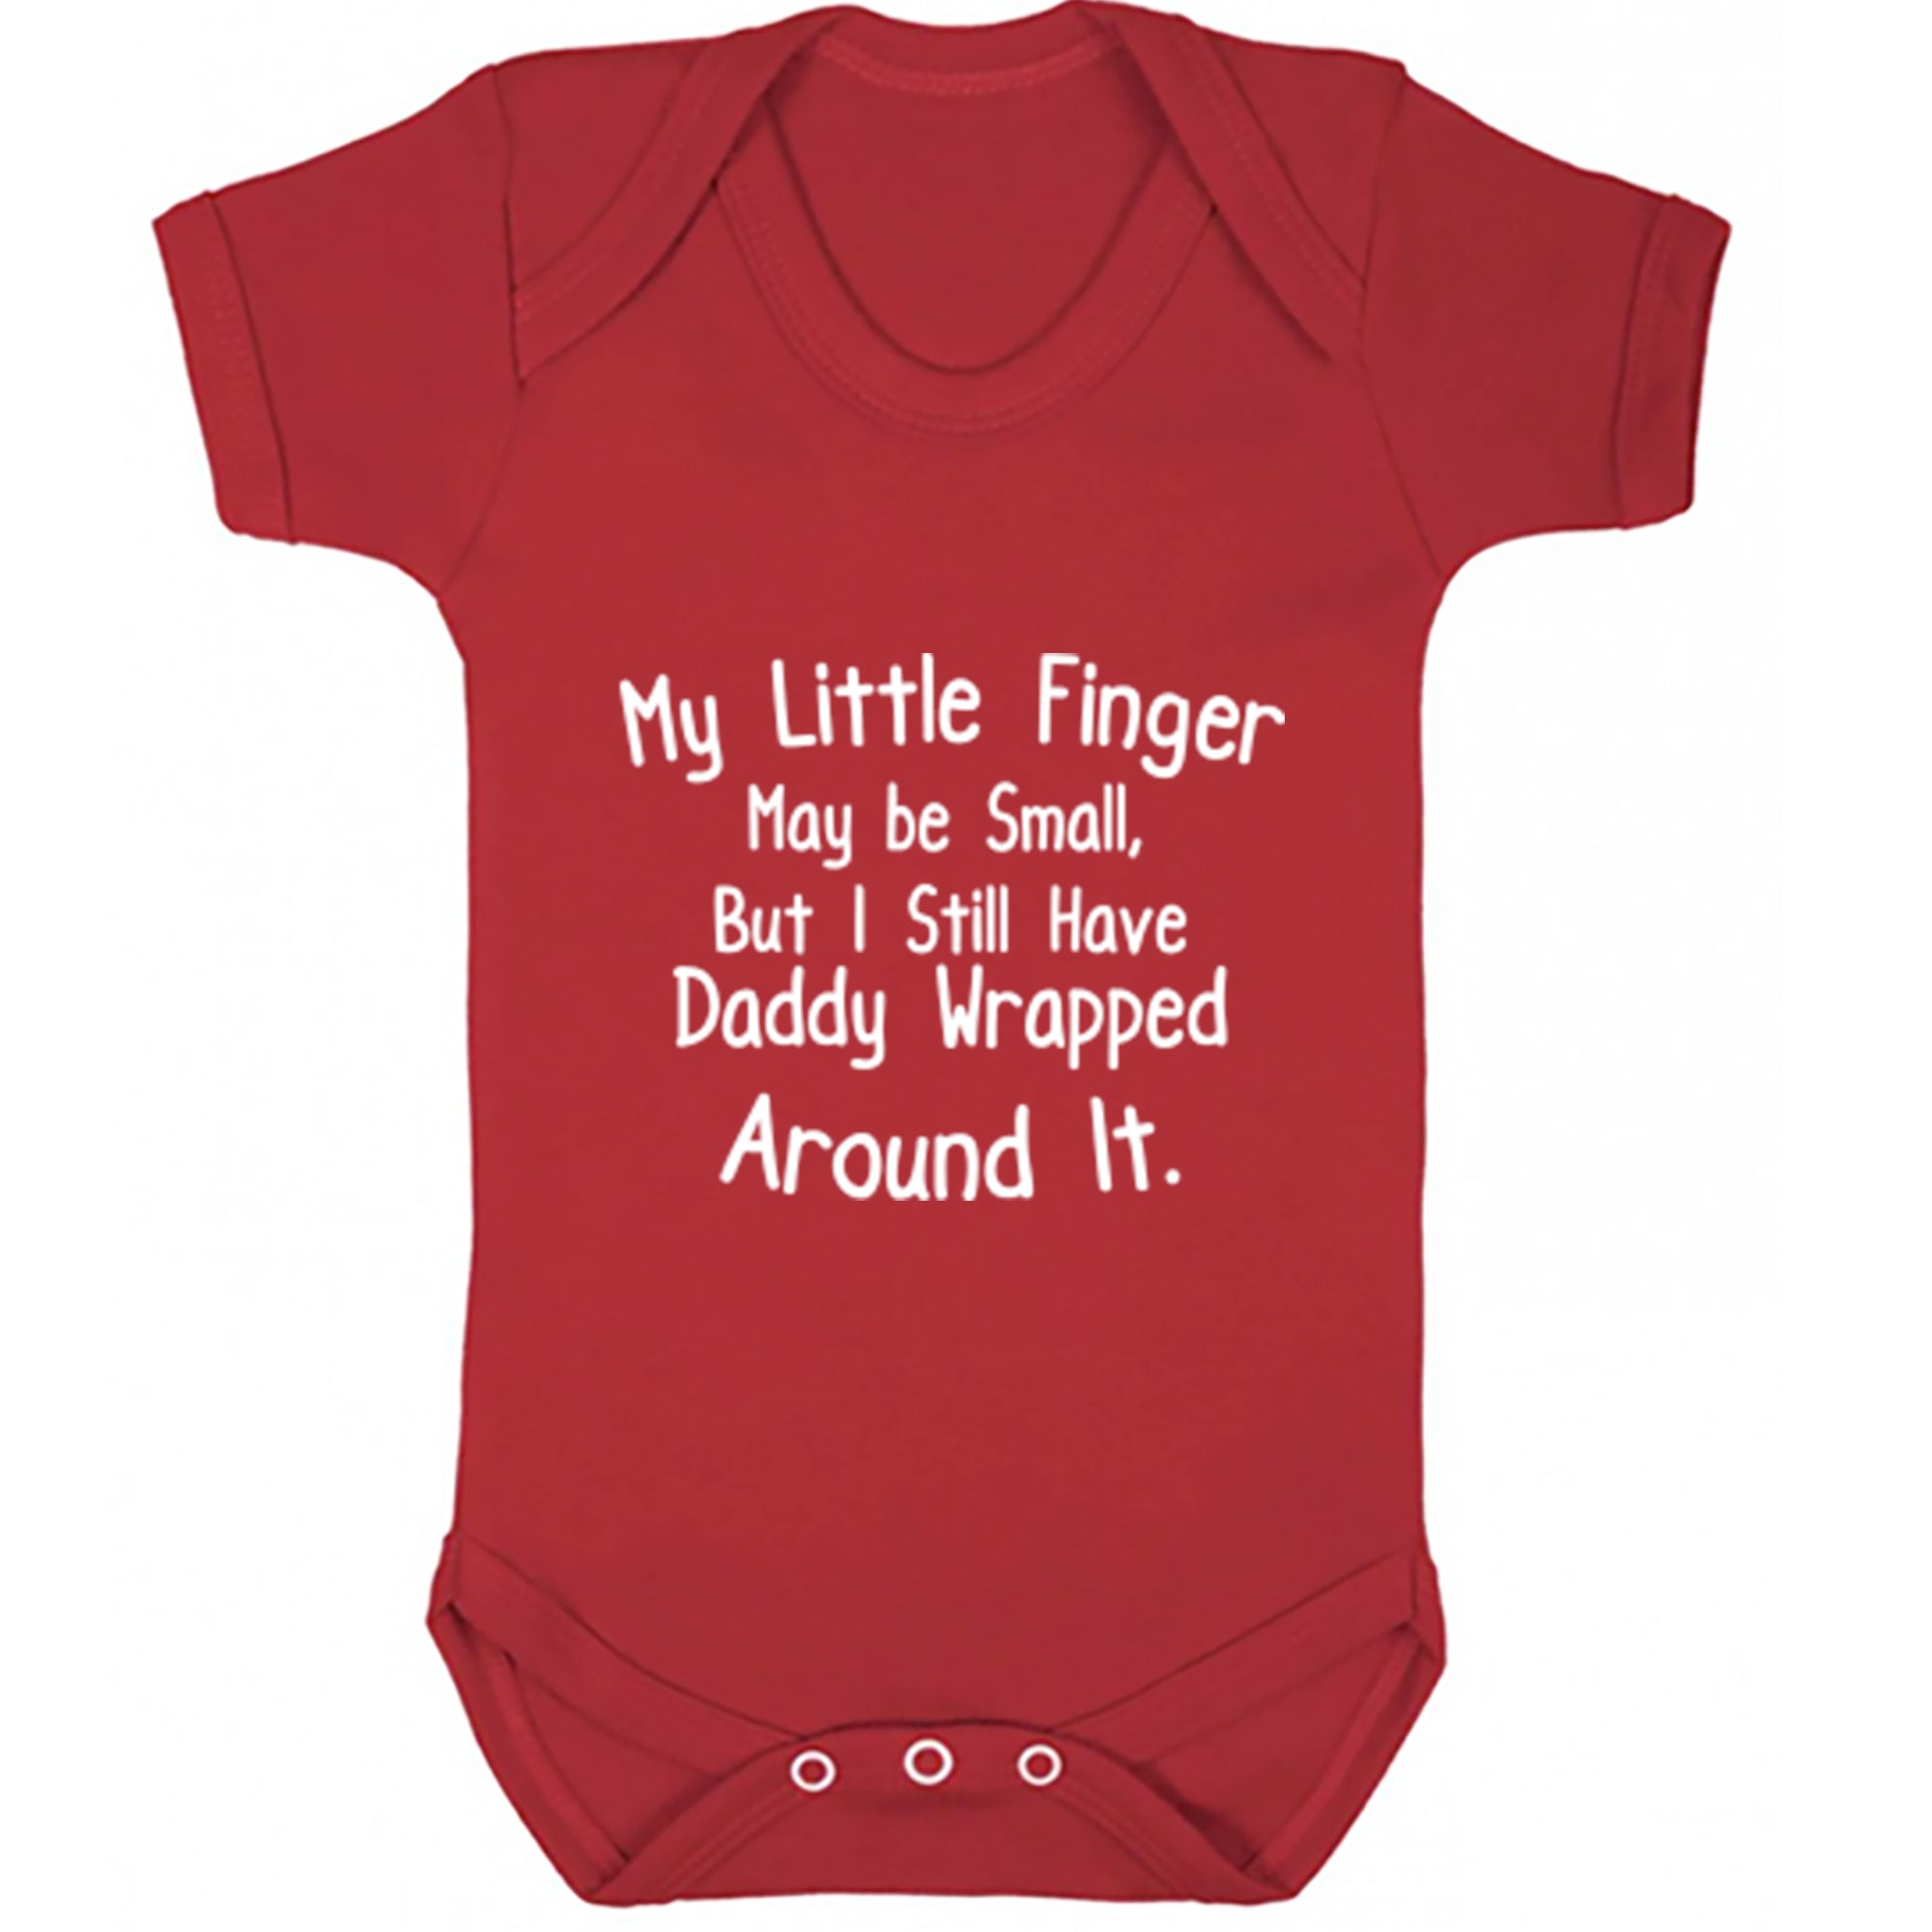 My Little Finger Maybe Small, But I Still Have Daddy Wrapped Around It Baby Vest S0725 - Illustrated Identity Ltd.